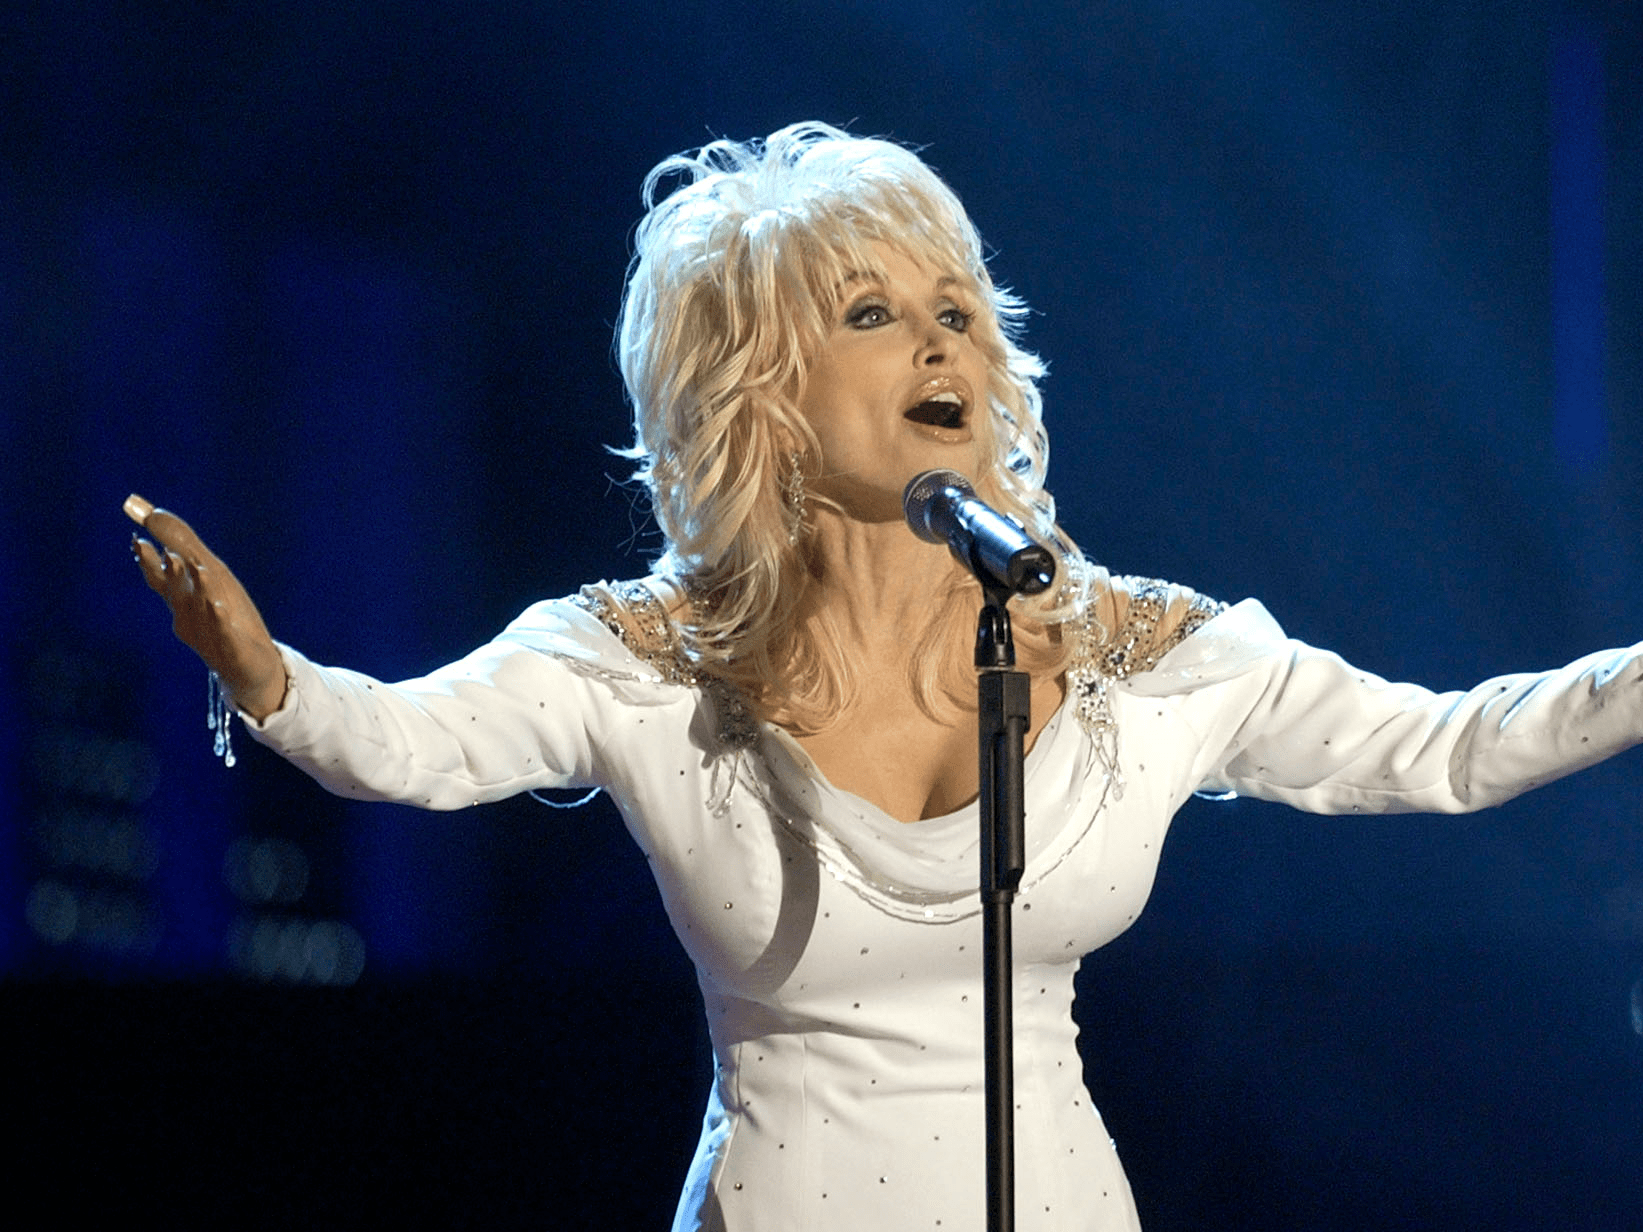 Dolly Parton donated $ 1 million to Moderna's vaccine research